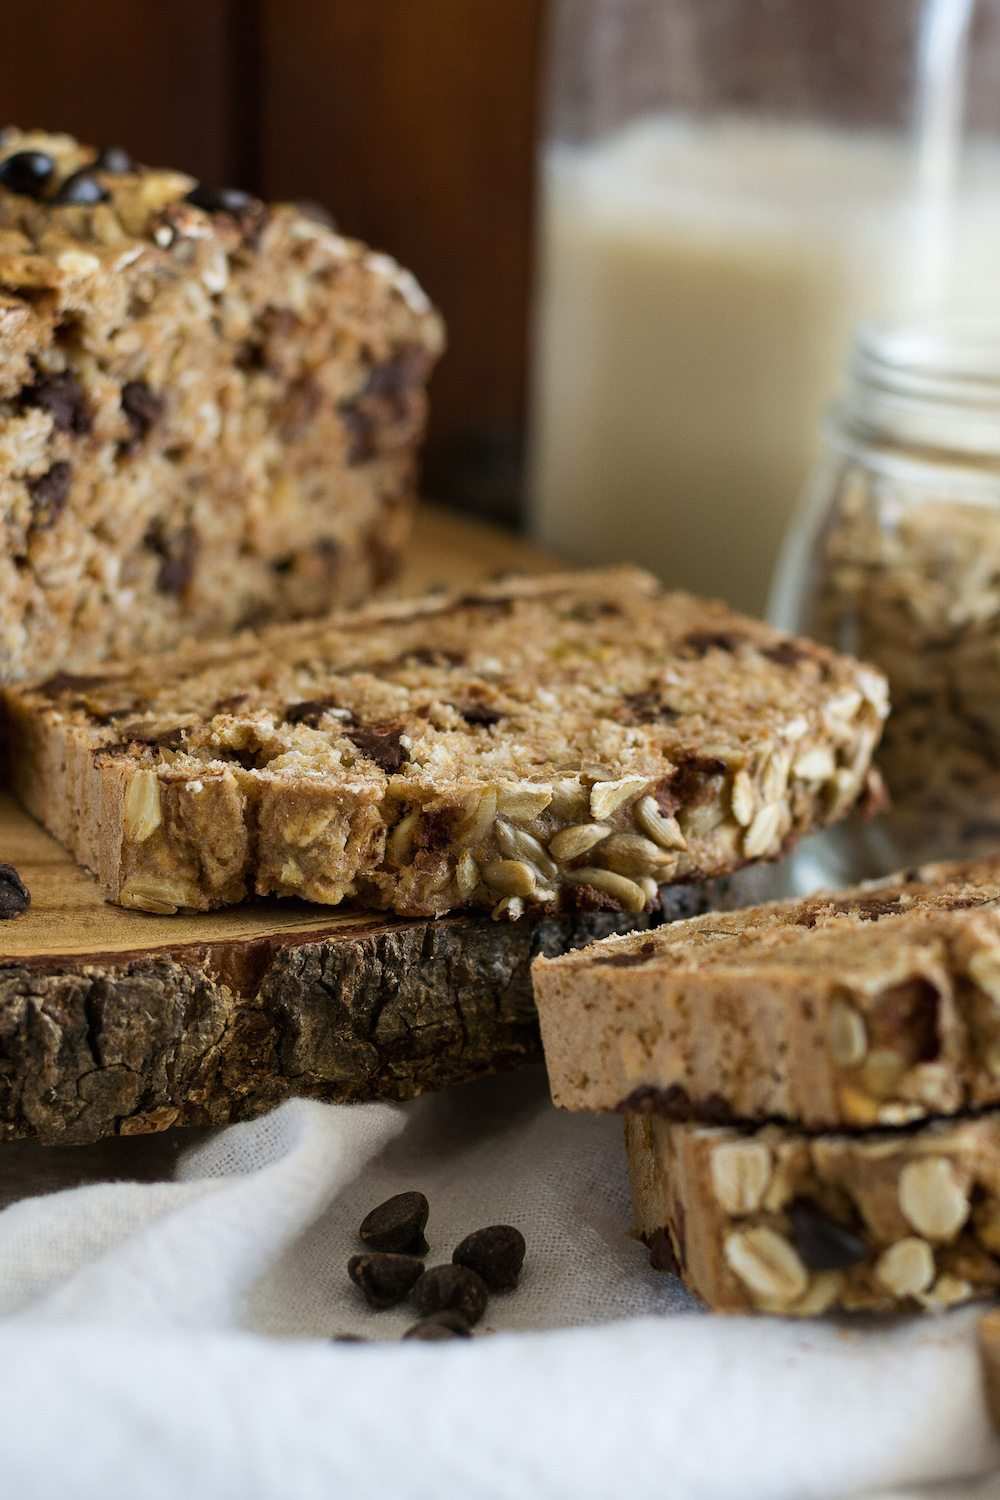 Chocolate Chip-Oat Bread by Jazzy Vegetarian